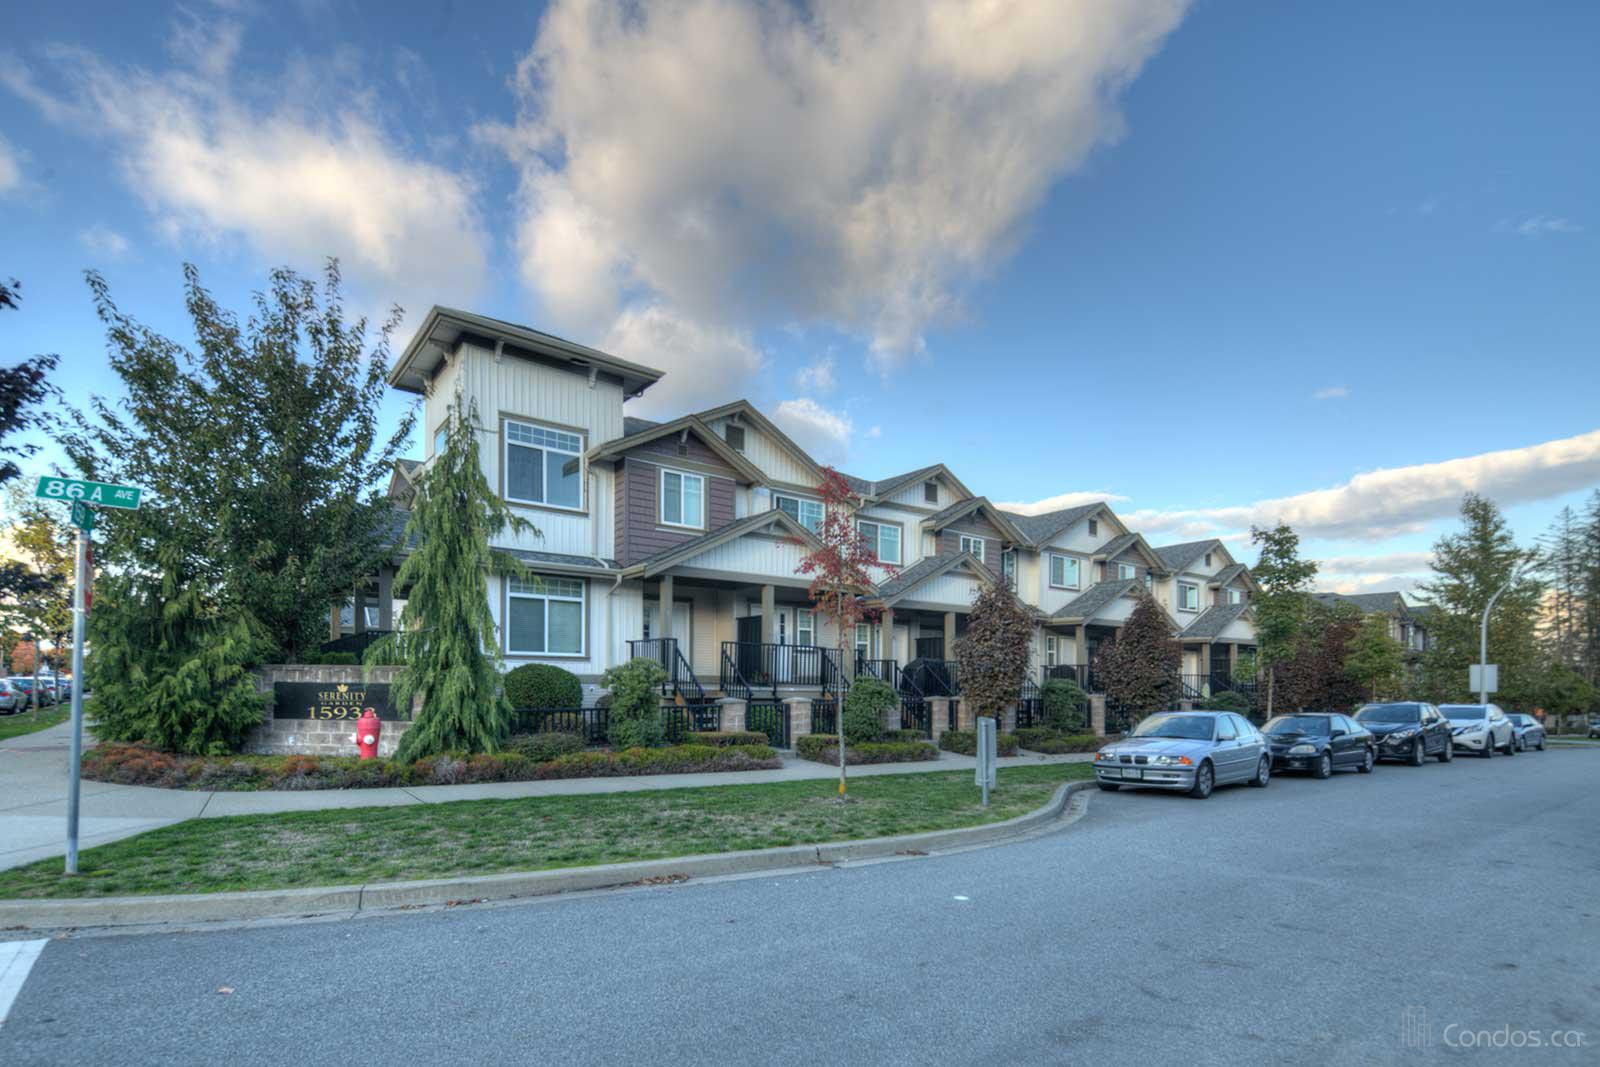 Serenity Gardens at 15933 86A Ave, Surrey 0